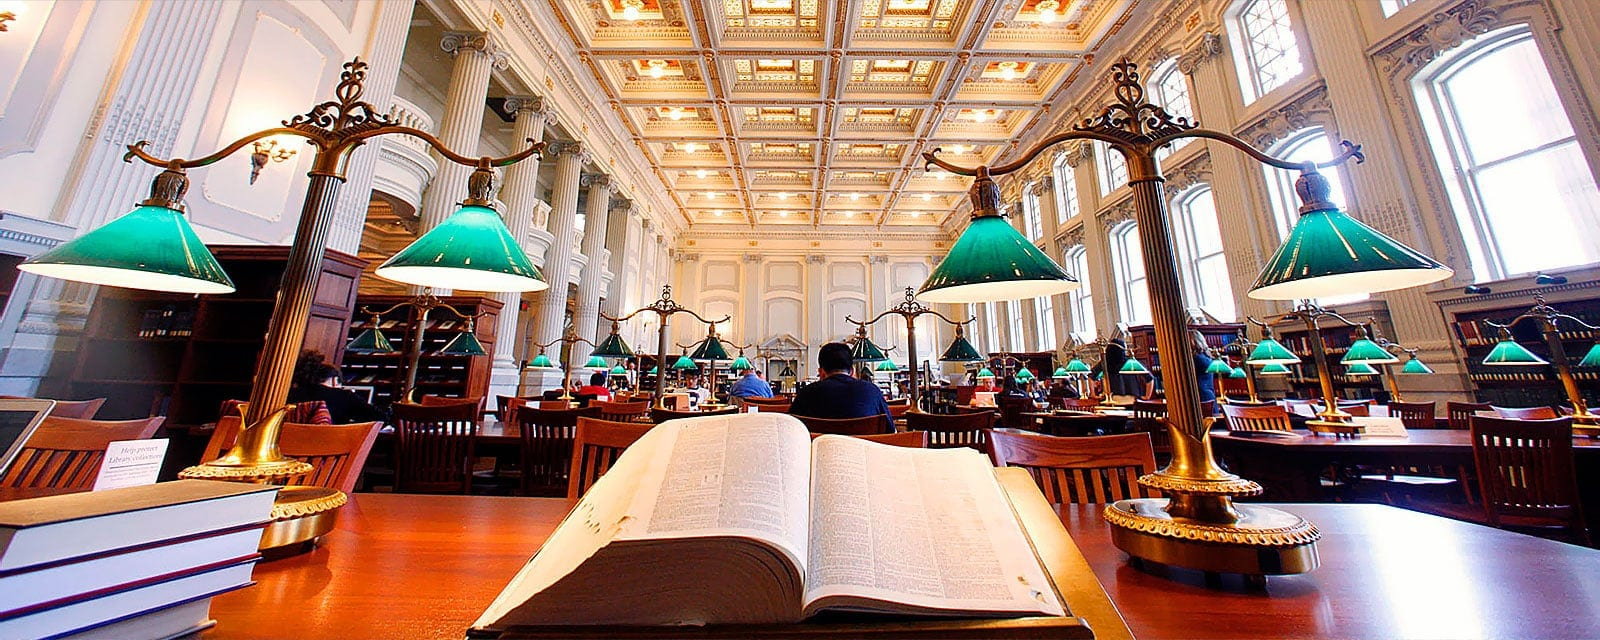 Long view of the state library's reading room